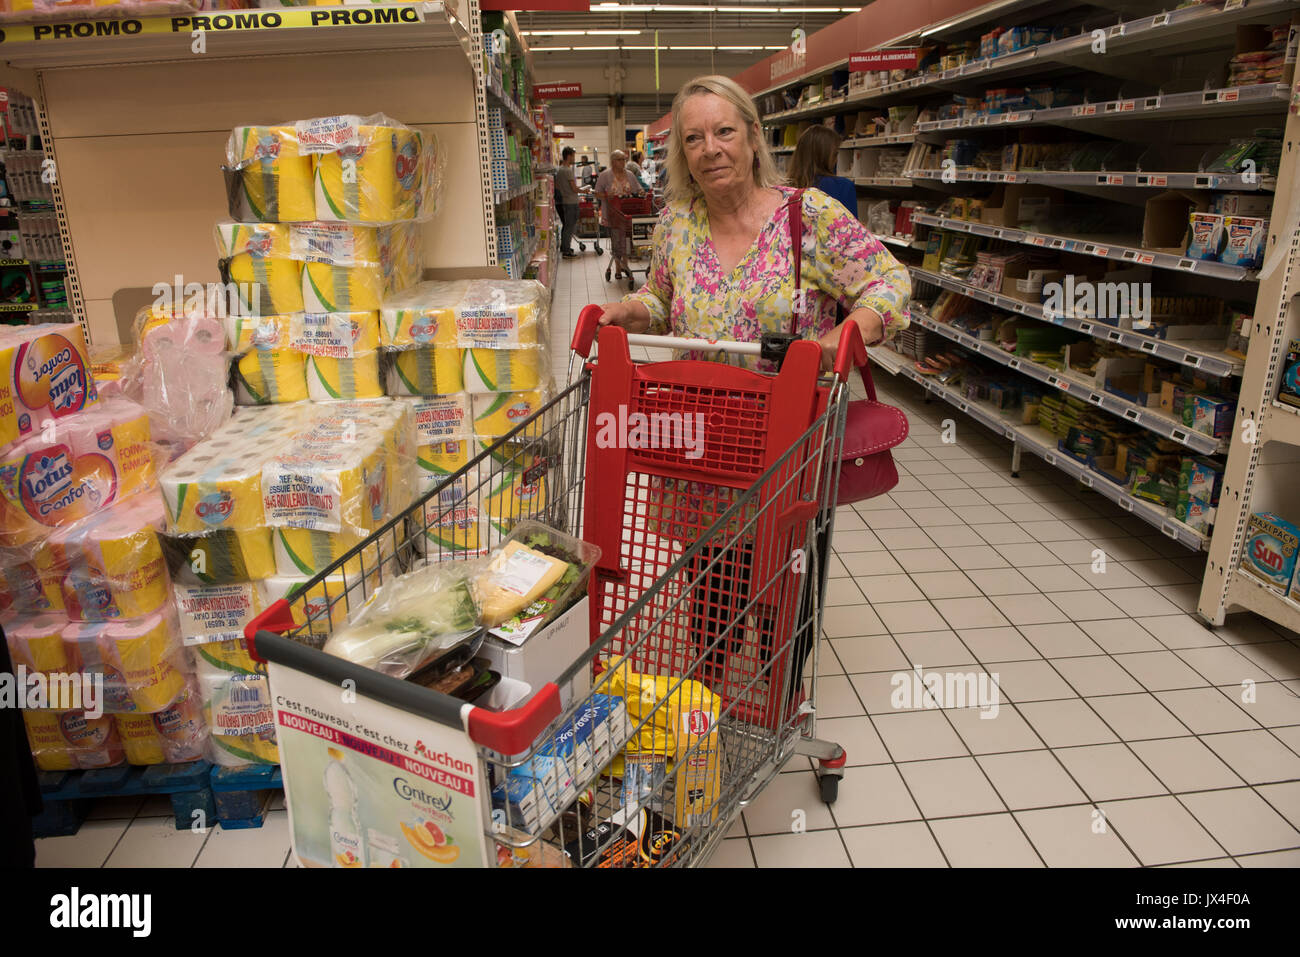 Calais France. Auchan supermarket. Shopping. Aug 2017 - Stock Image